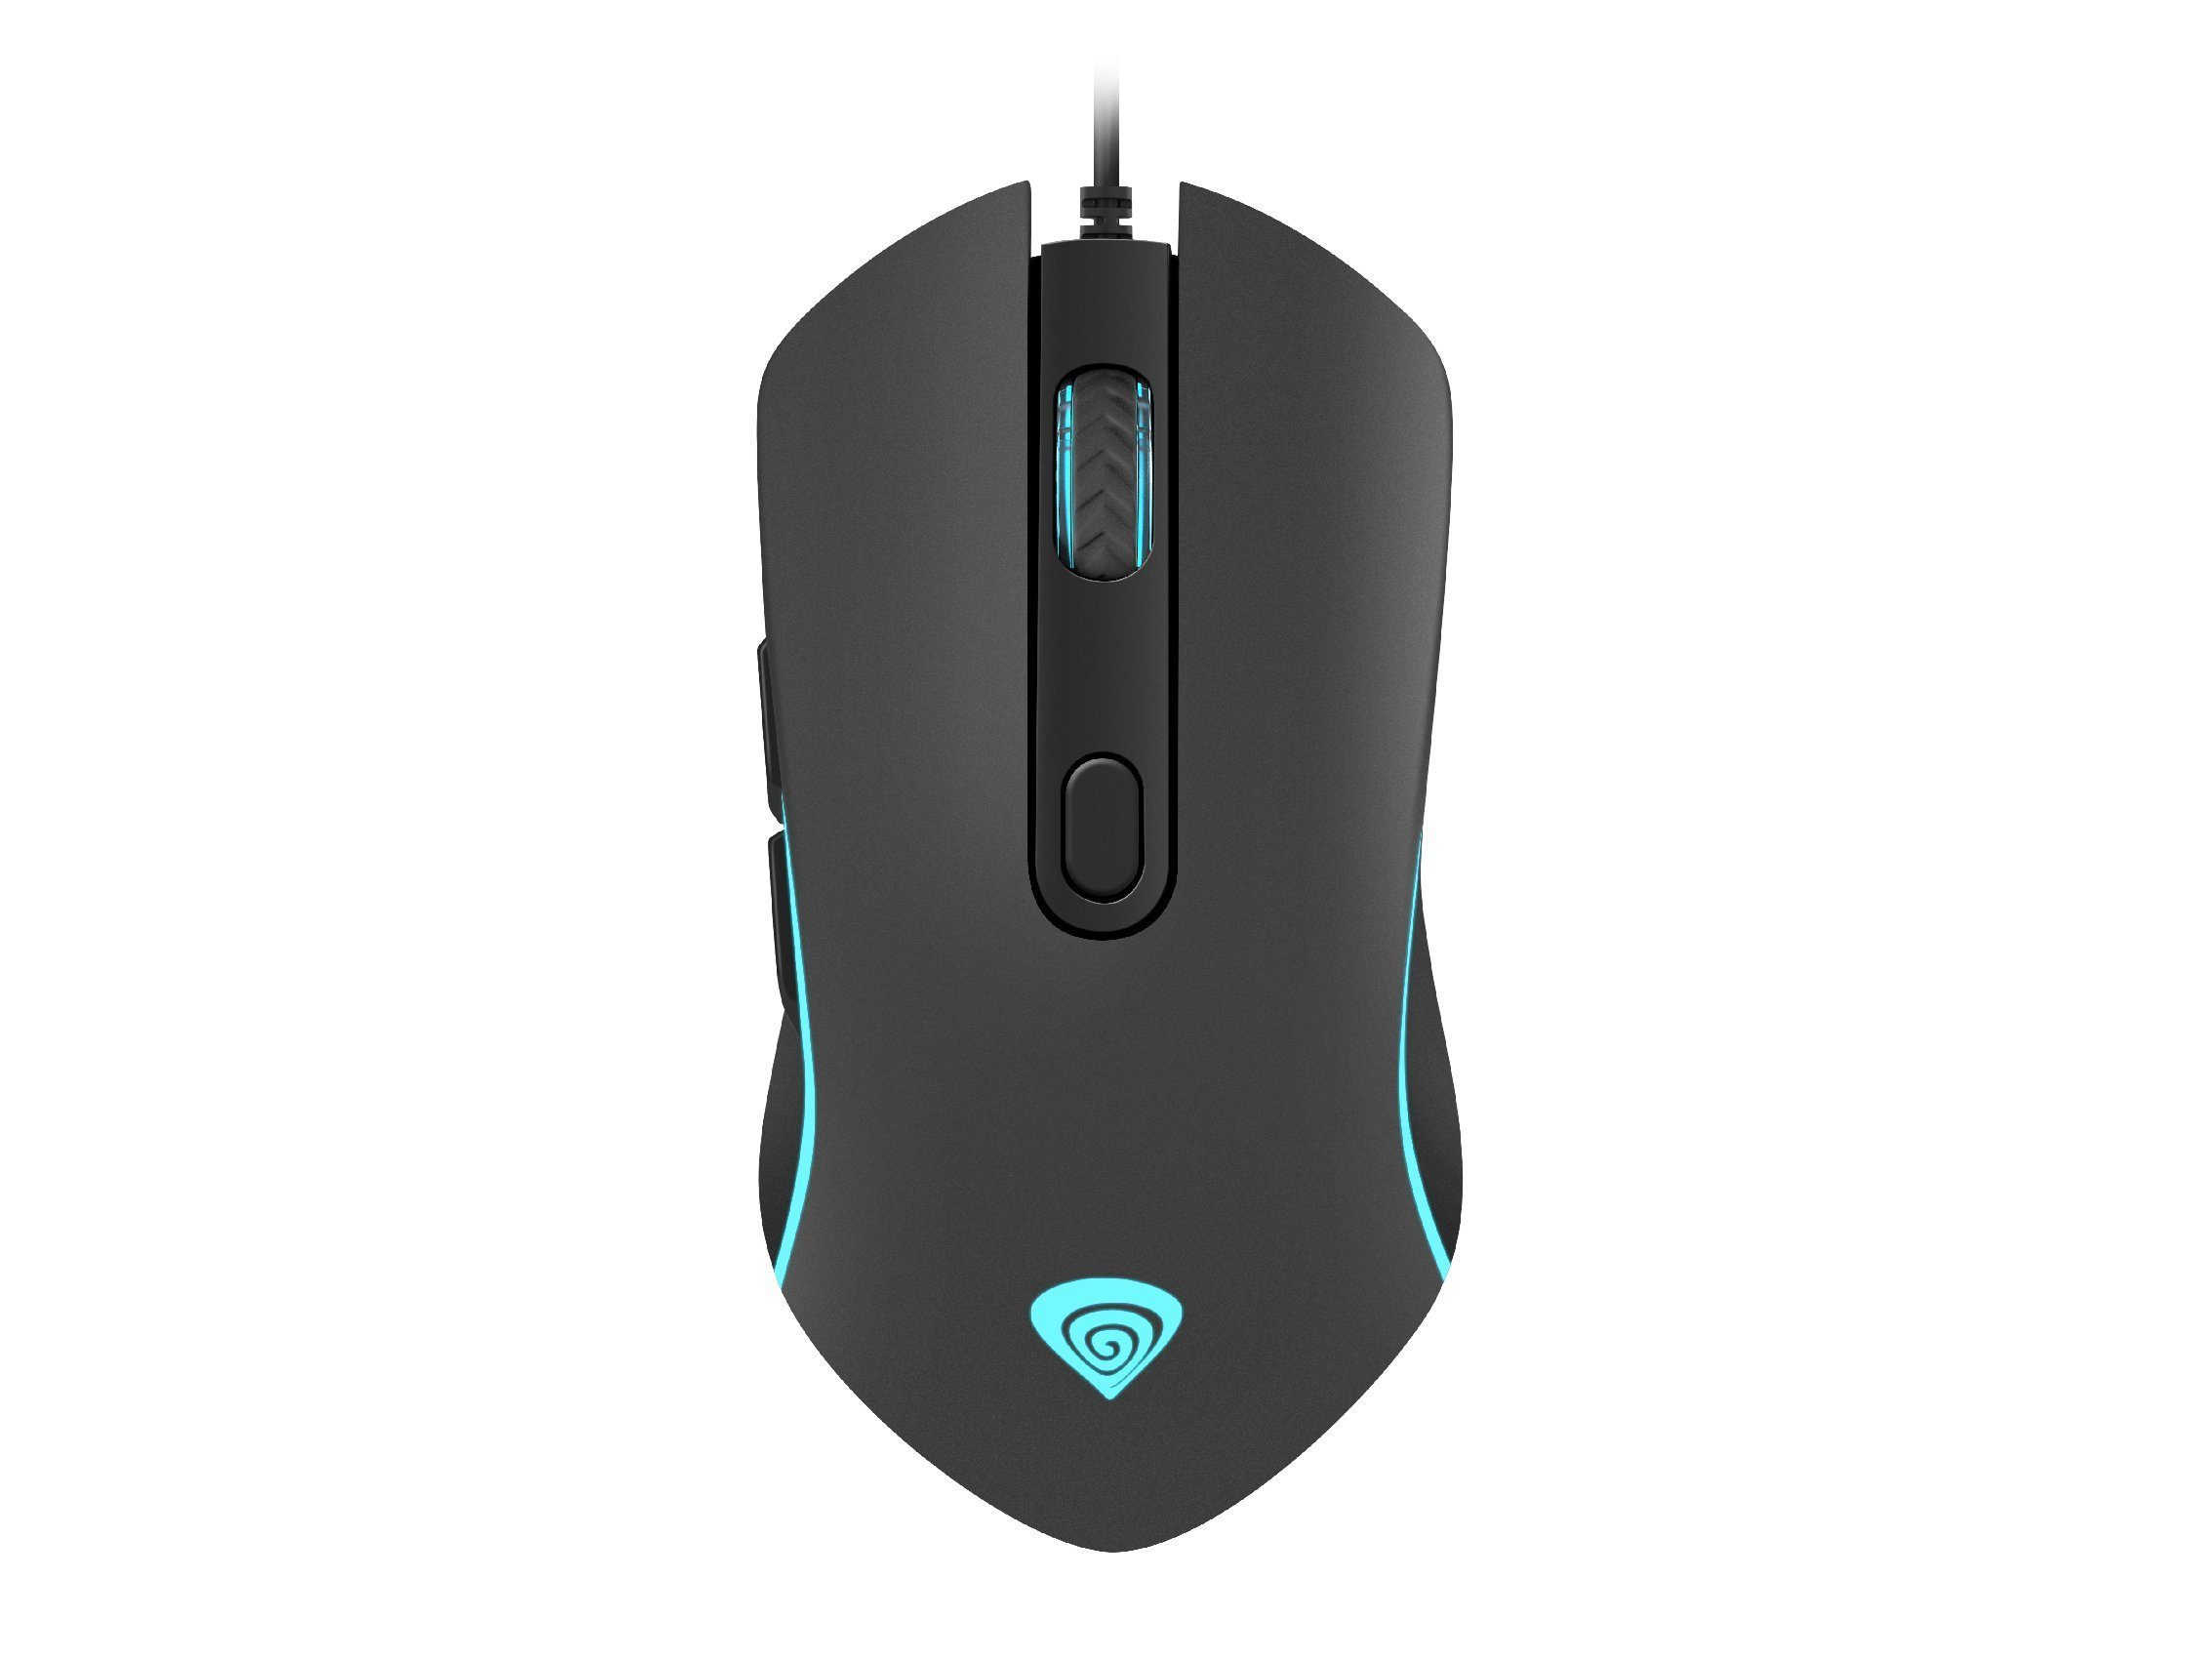 Genesis геймърска мишка Gaming Mouse KRYPTON 150 - 2400dpi, 7 colors backlight - NMG-1410